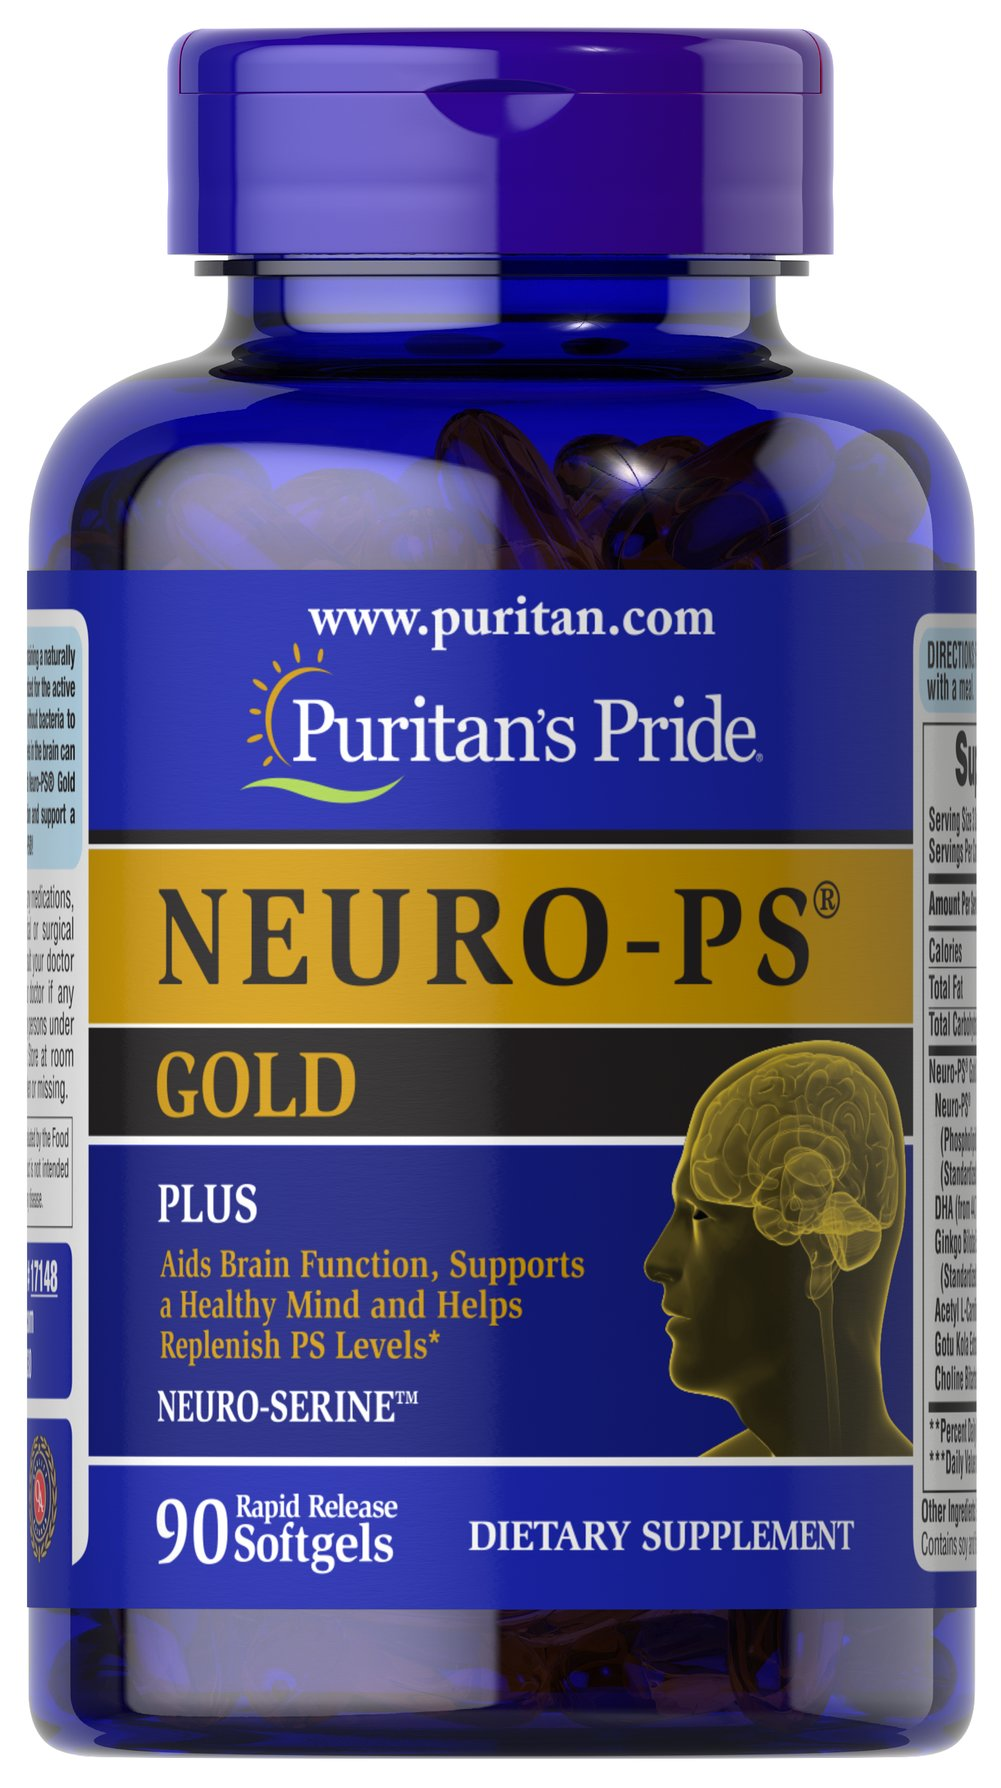 NEURO-PS® GOLD™ <p>Phosphatidylserine (PS), is a natural substance found in brain cell  membranes.** Phosphatidylserine levels in the brain can decline with age, so it  is important to supplement with Neuro-PS® every day to aid brain function and  support a healthy mind.** Very limited and preliminary scientific research  suggests that PS may reduce the risk of cognitive dysfunction in the elderly.  FDA concludes that there is little scientific evidence supporting this  claim.&lt